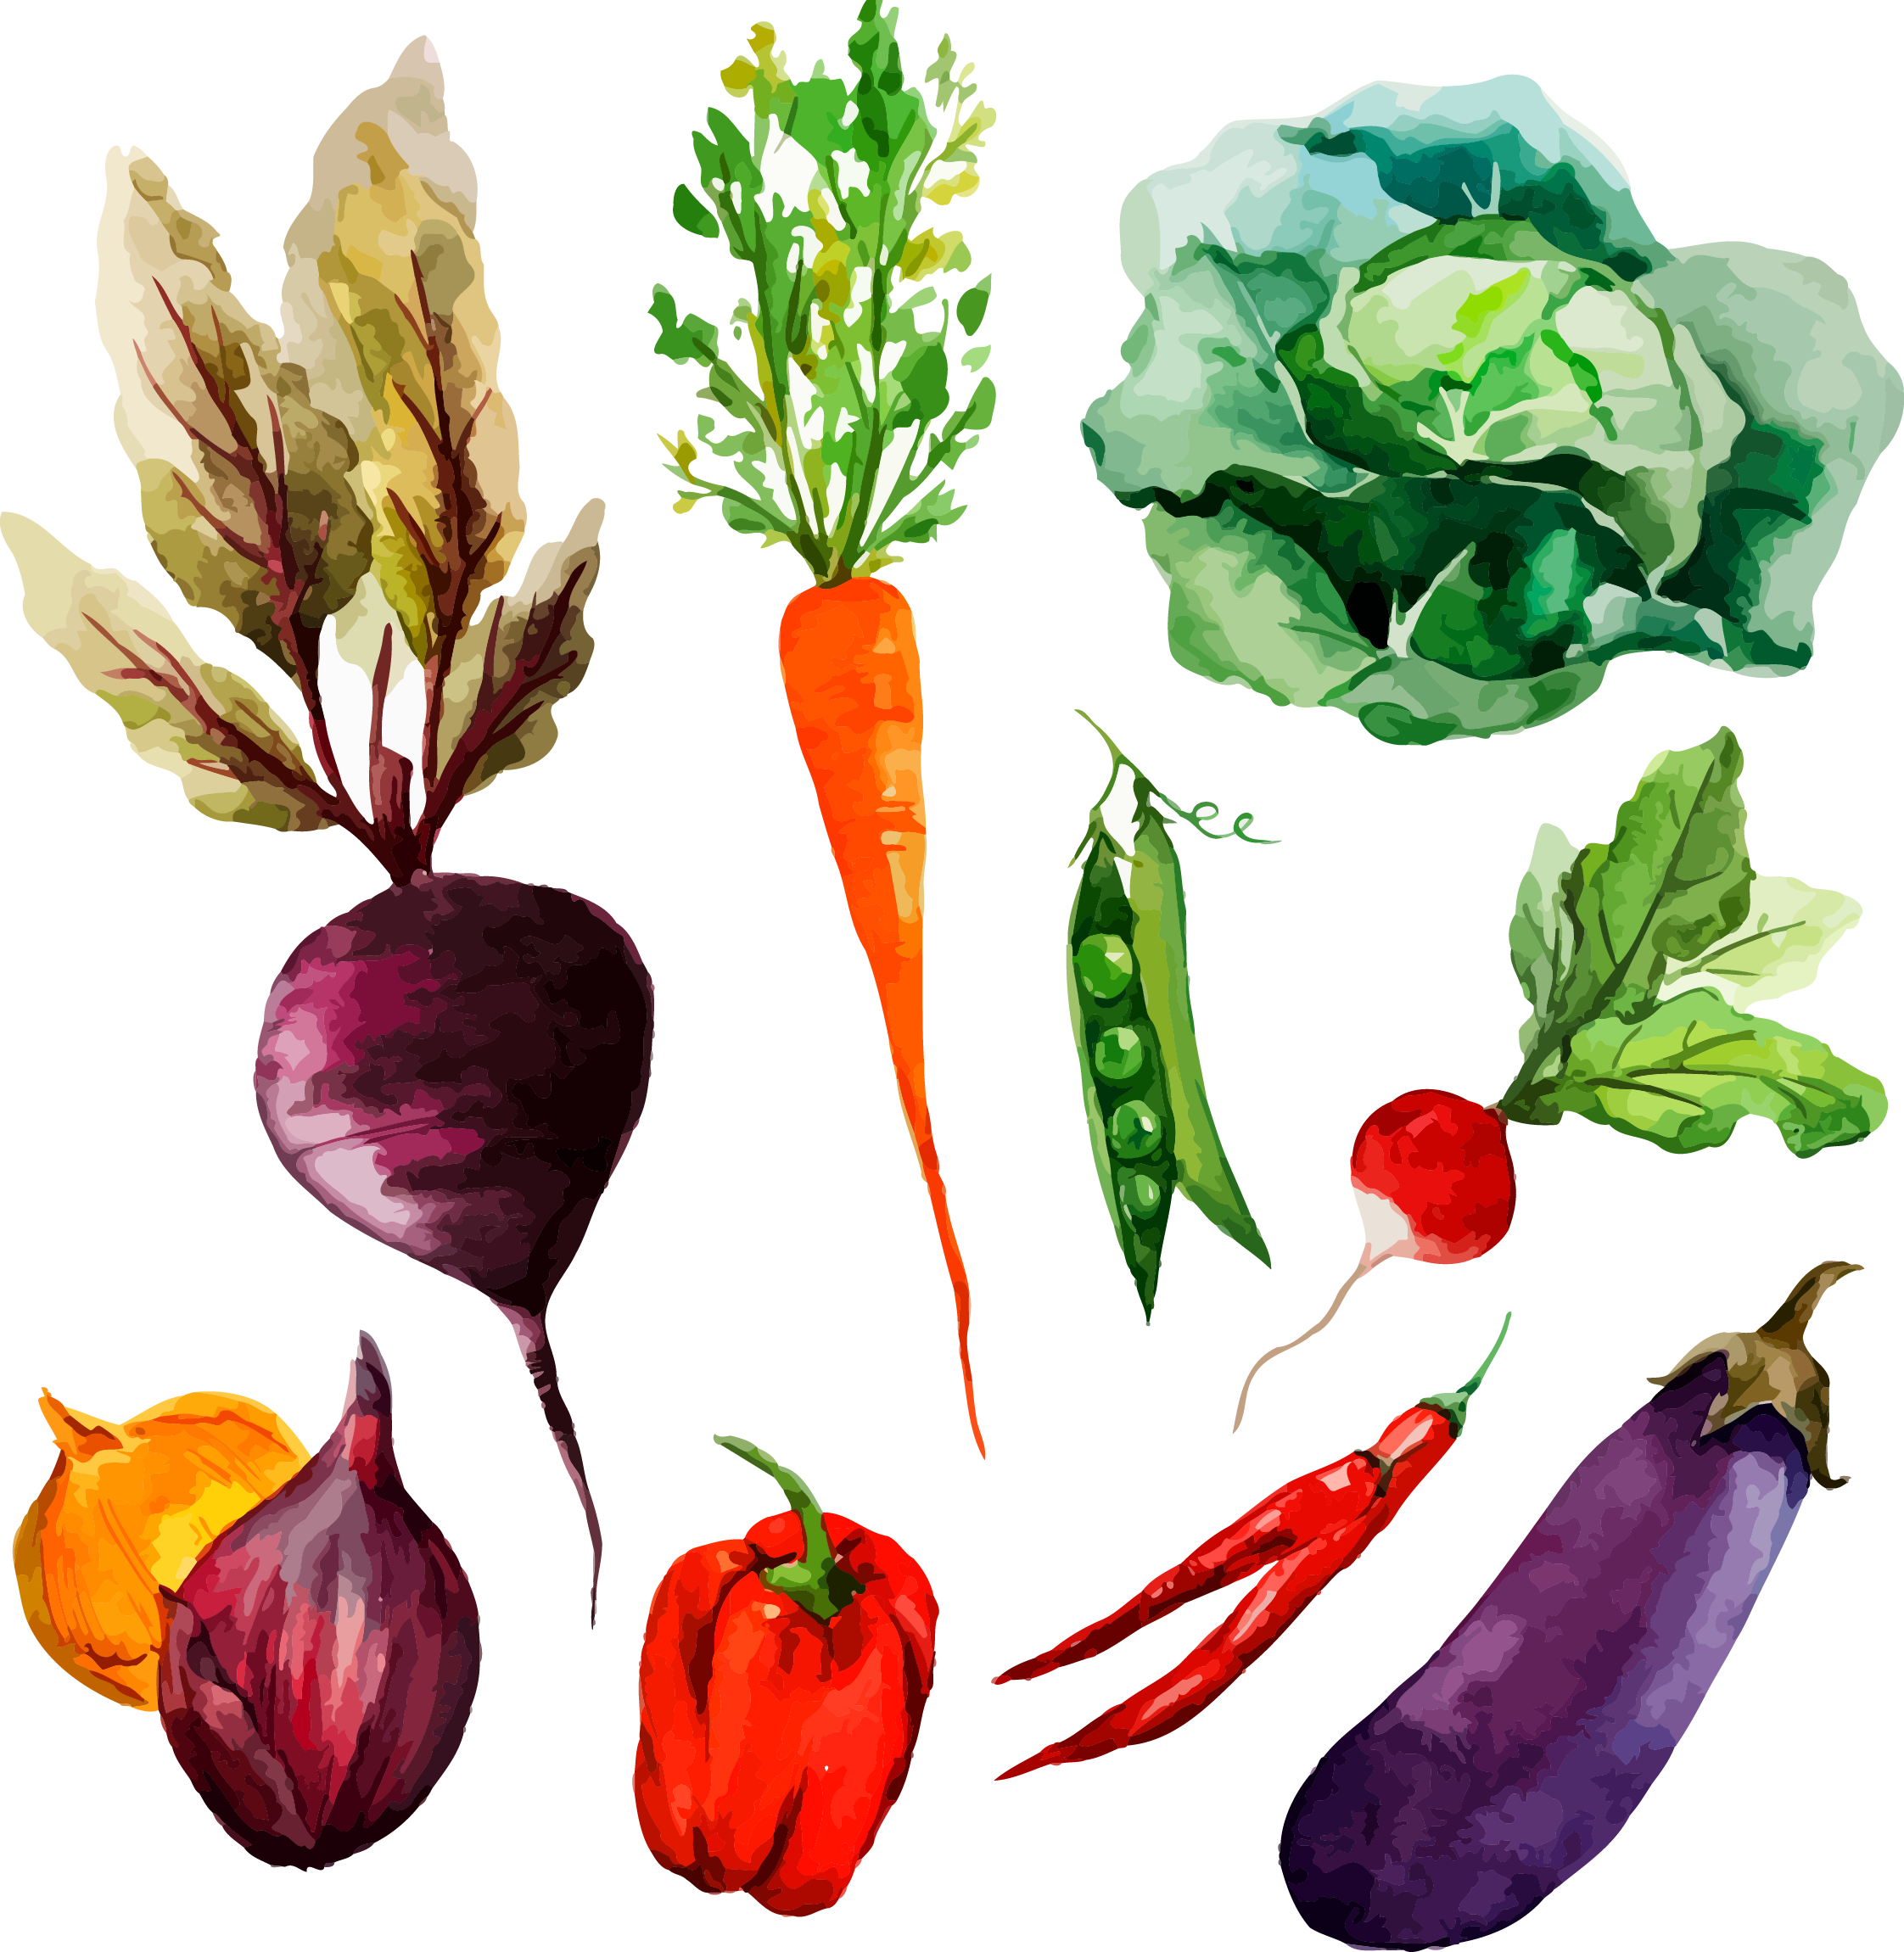 png freeuse library Watercolor painting vegetable illustration. Beet drawing hand drawn